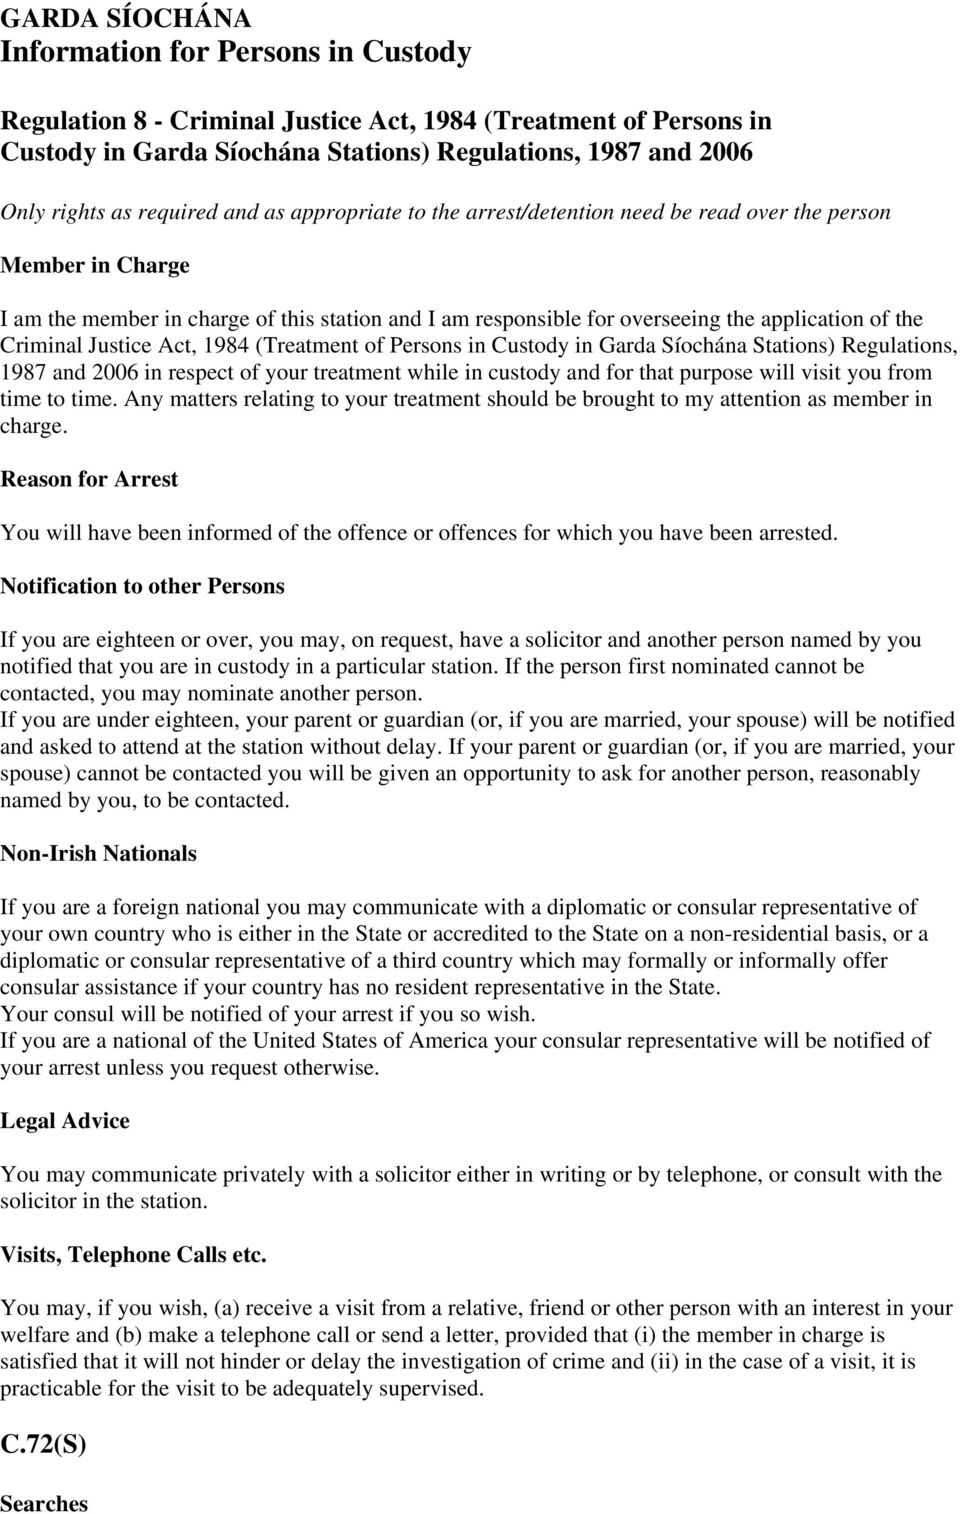 Criminal Justice Act, 1984 (Treatment of Persons in Custody in Garda Síochána Stations) Regulations, 1987 and 2006 in respect of your treatment while in custody and for that purpose will visit you